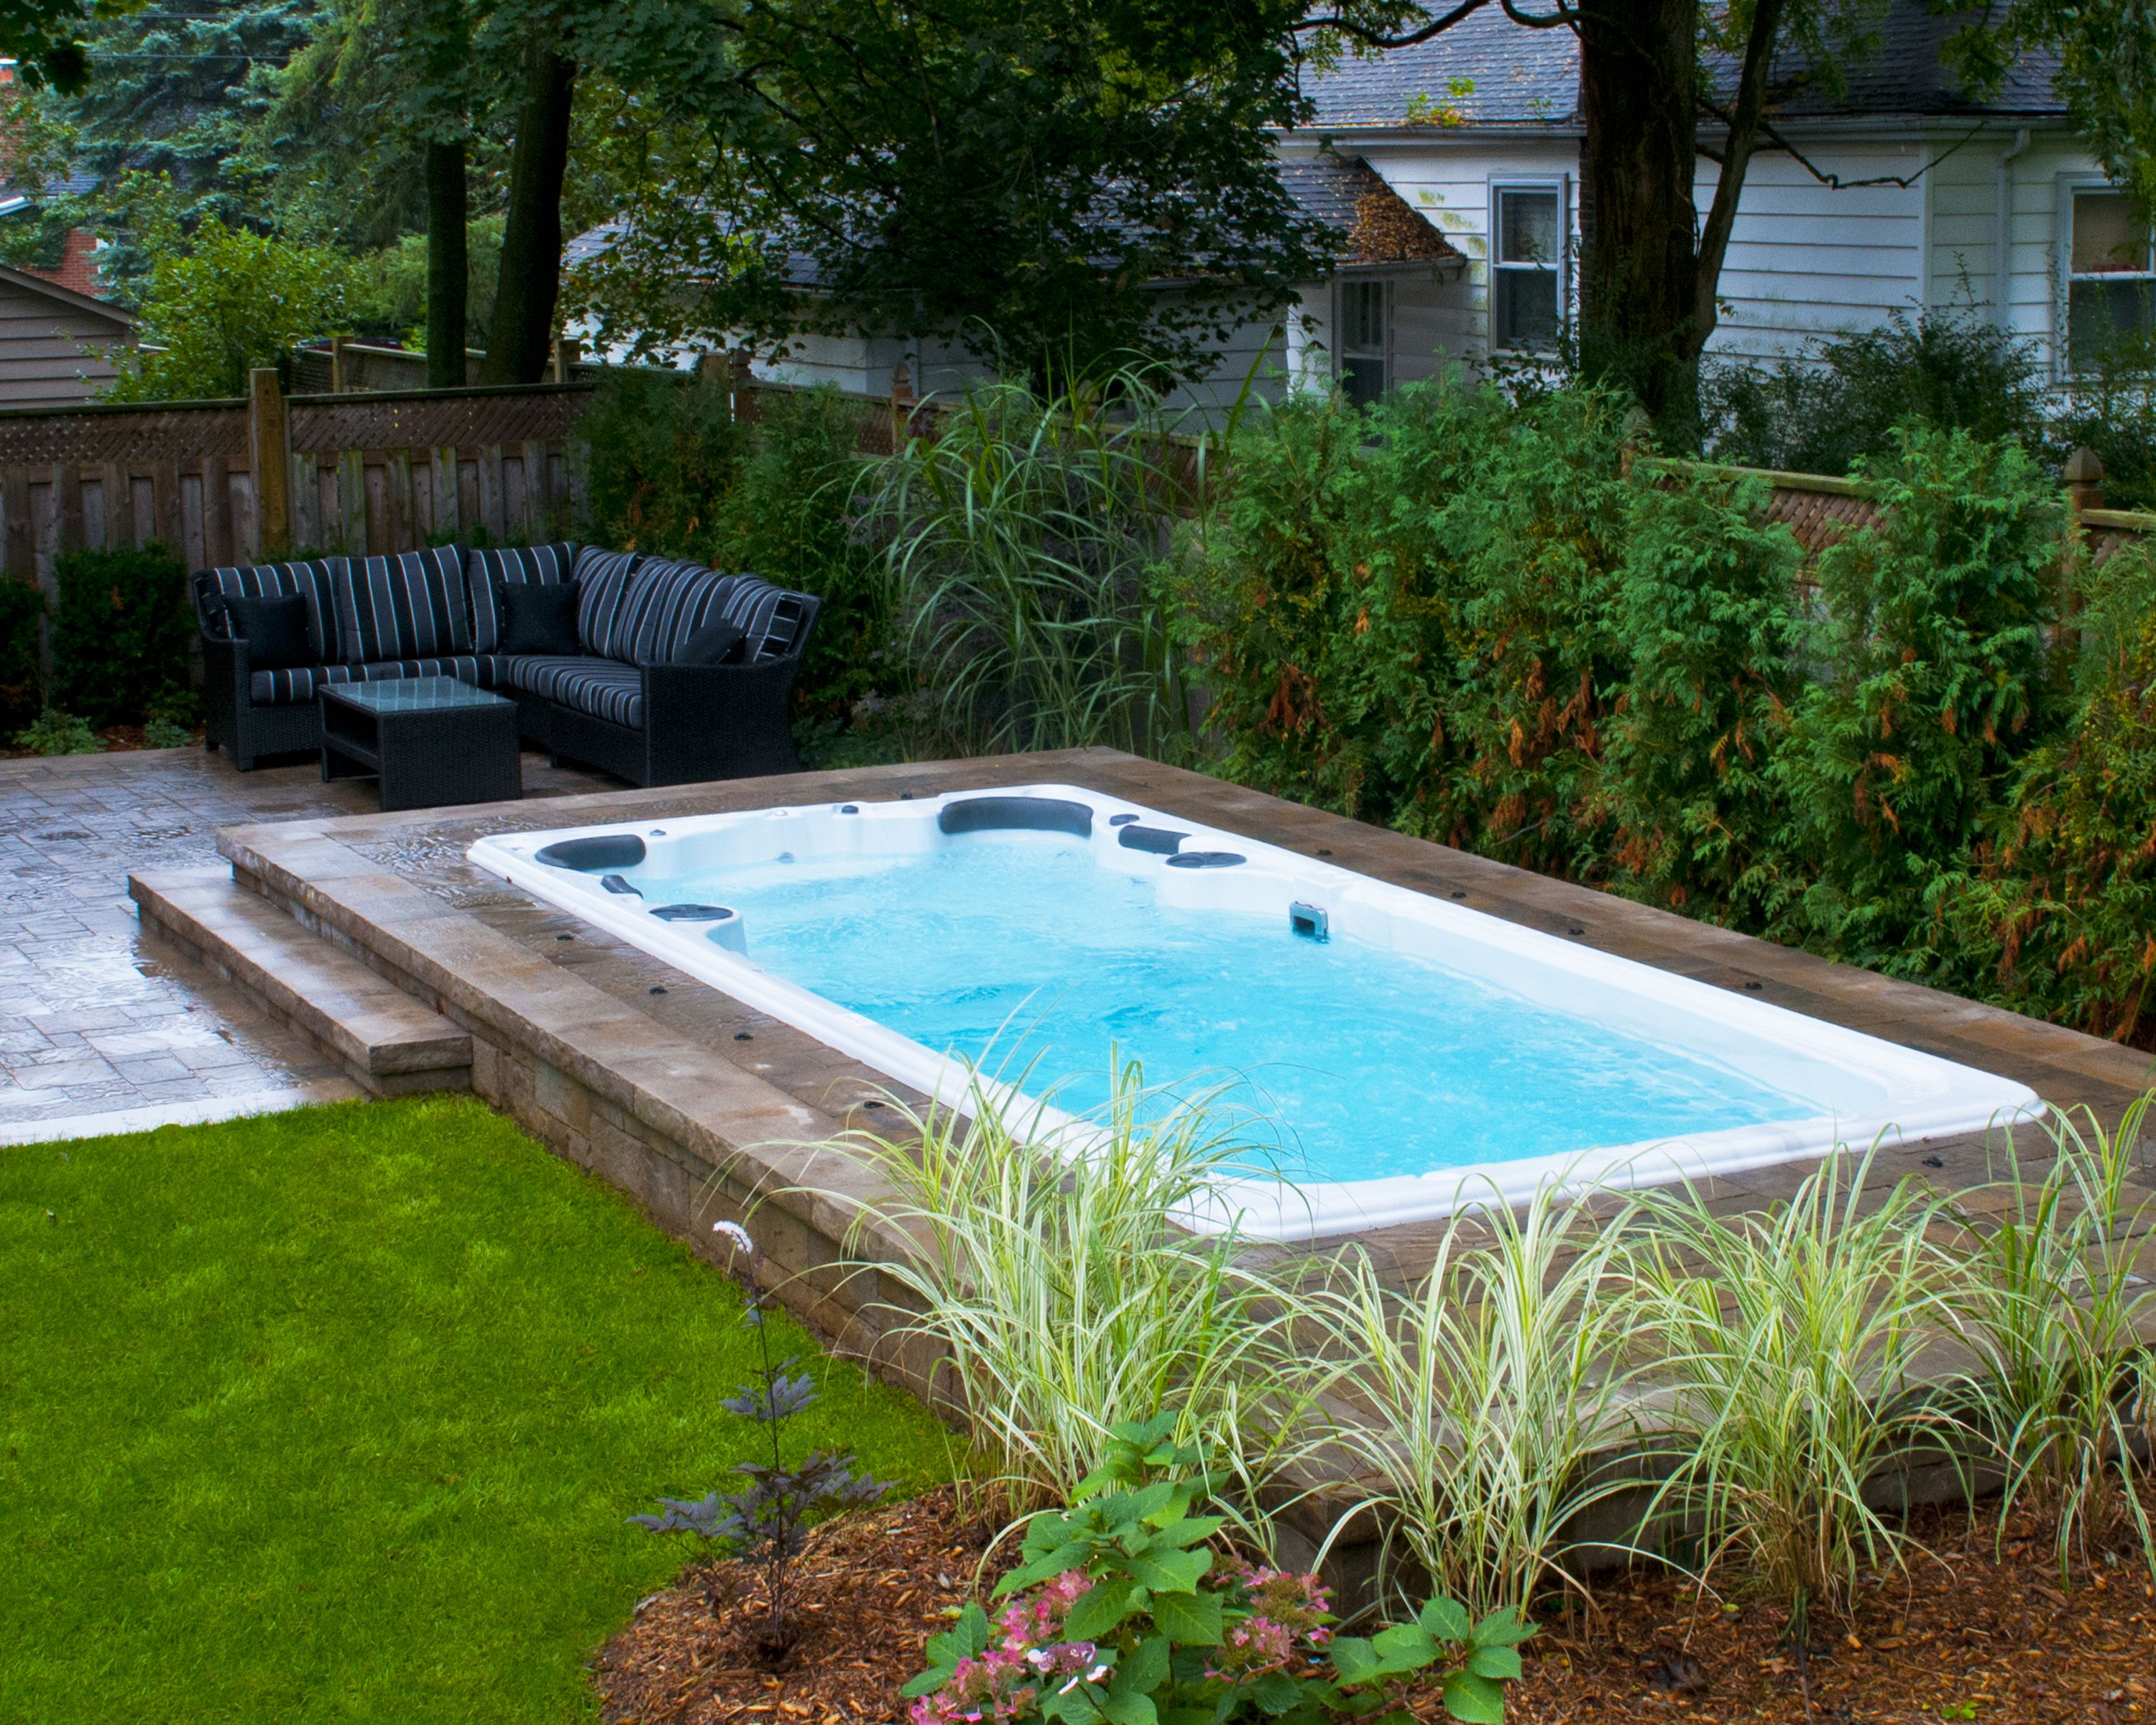 Jacuzzi Pool Temperature Pin By The Spa Shoppe On Swim Spa Install Ideas In 2019